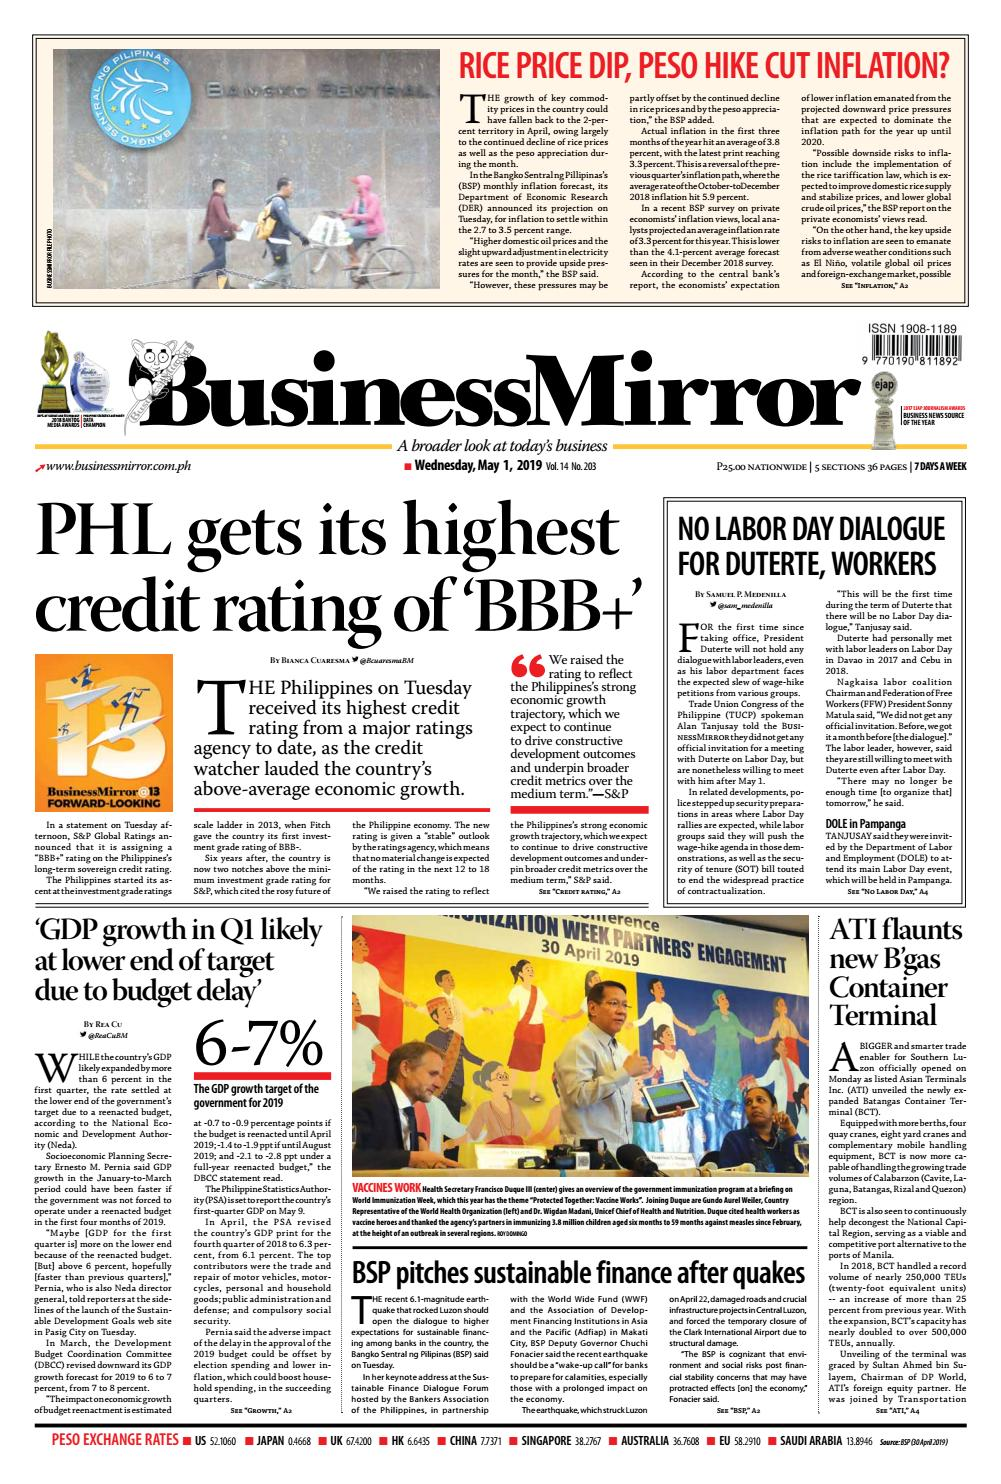 BusinessMirror May 01, 2019 by BusinessMirror - issuu